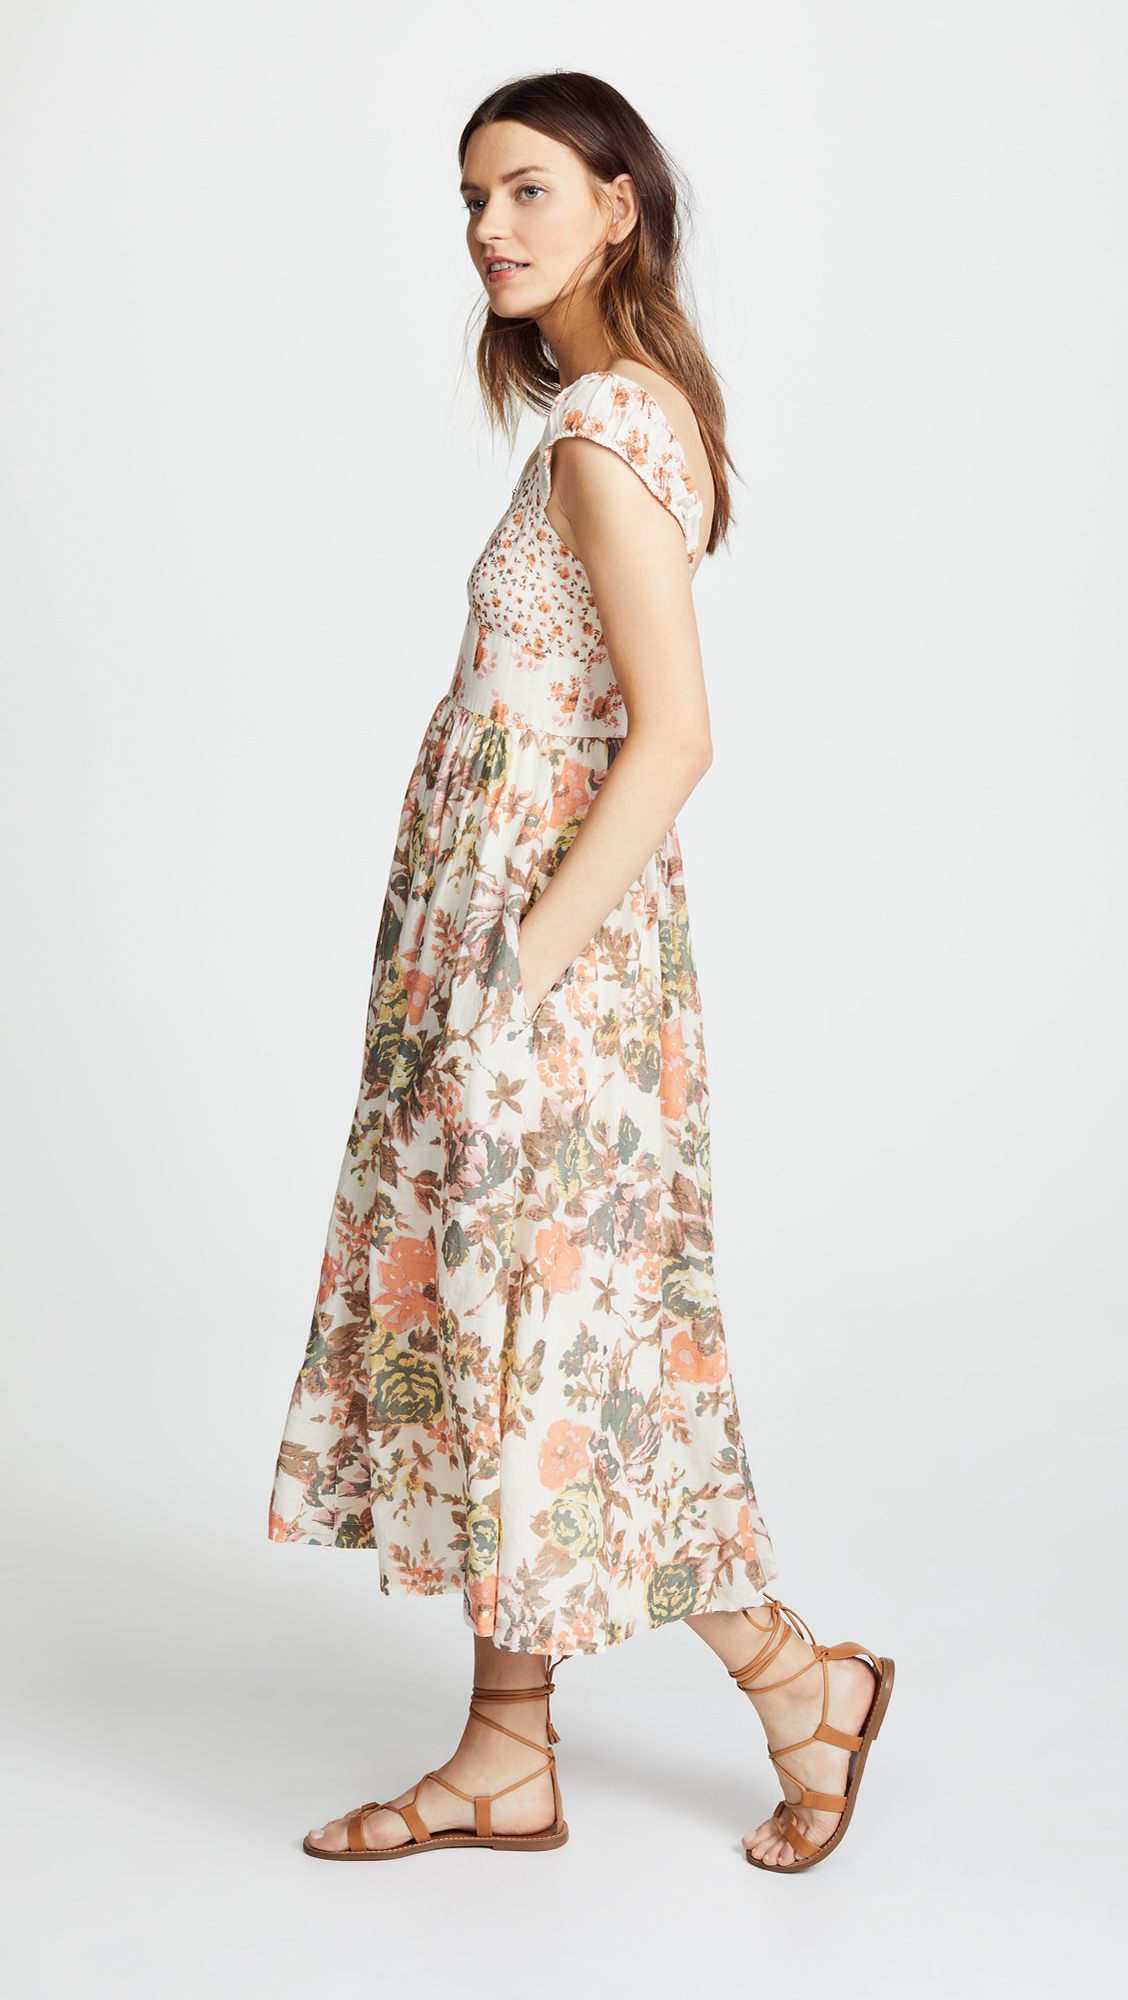 Free People Love You Midi Dress